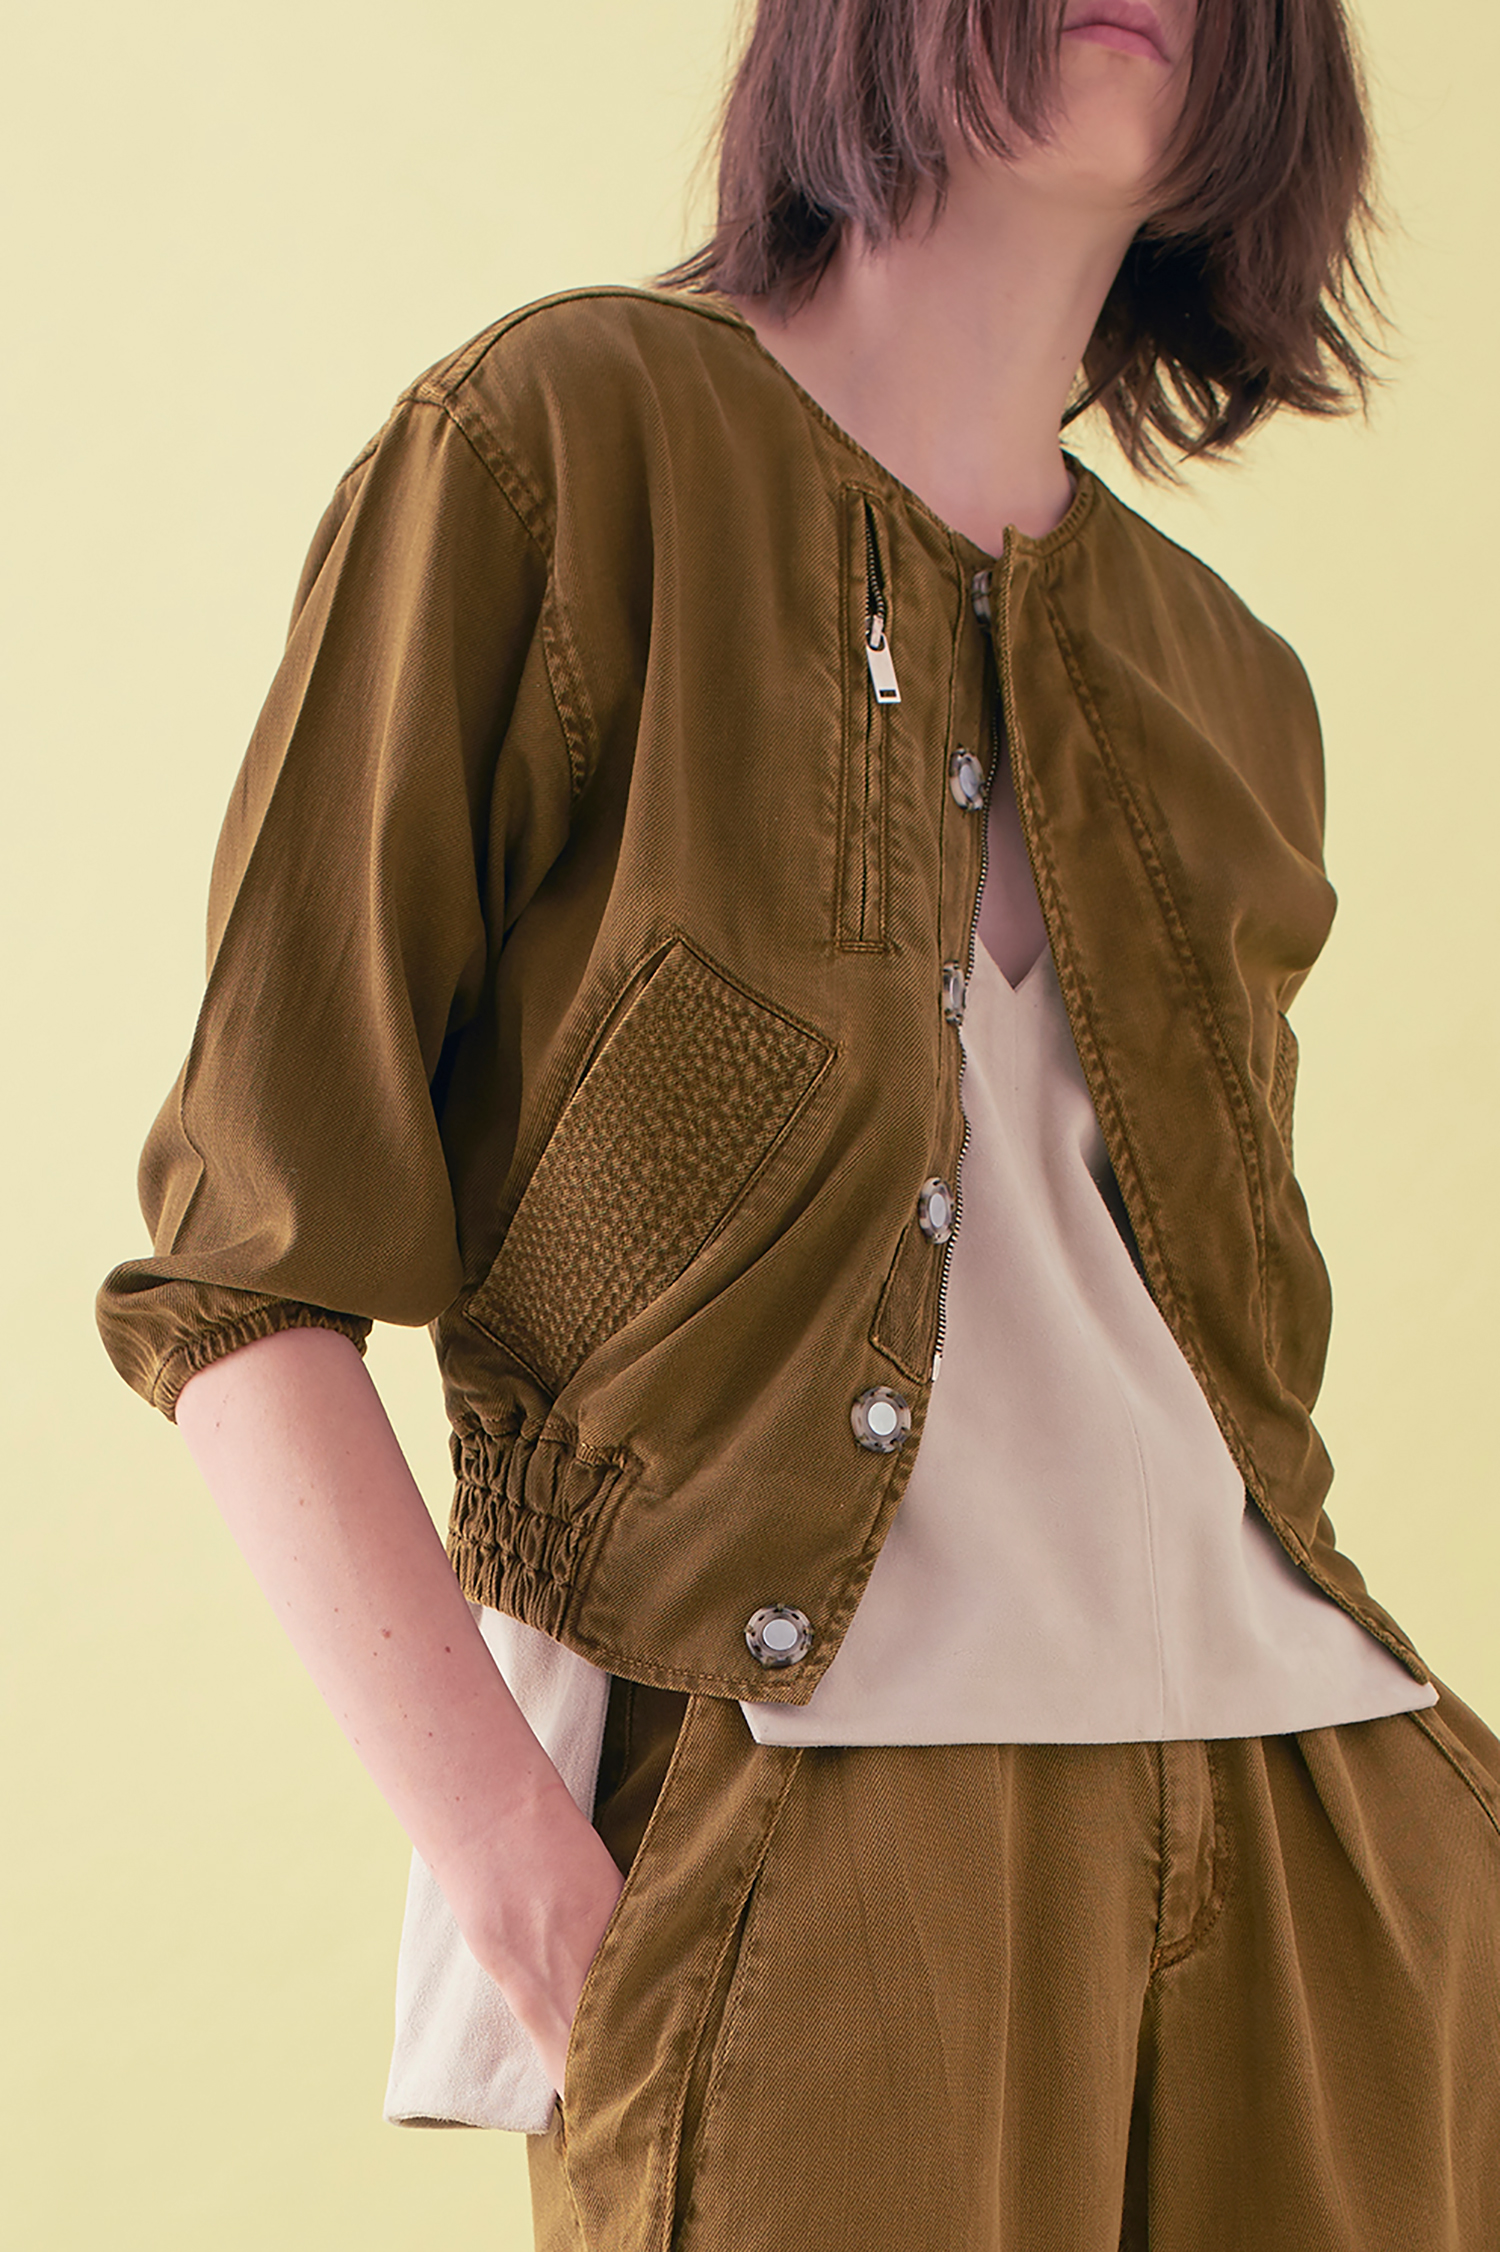 Sarah_Swann_SS17_09_Garment_Dyed_Cotton_Short_Utility_Jacket_Olive_F01.jpg